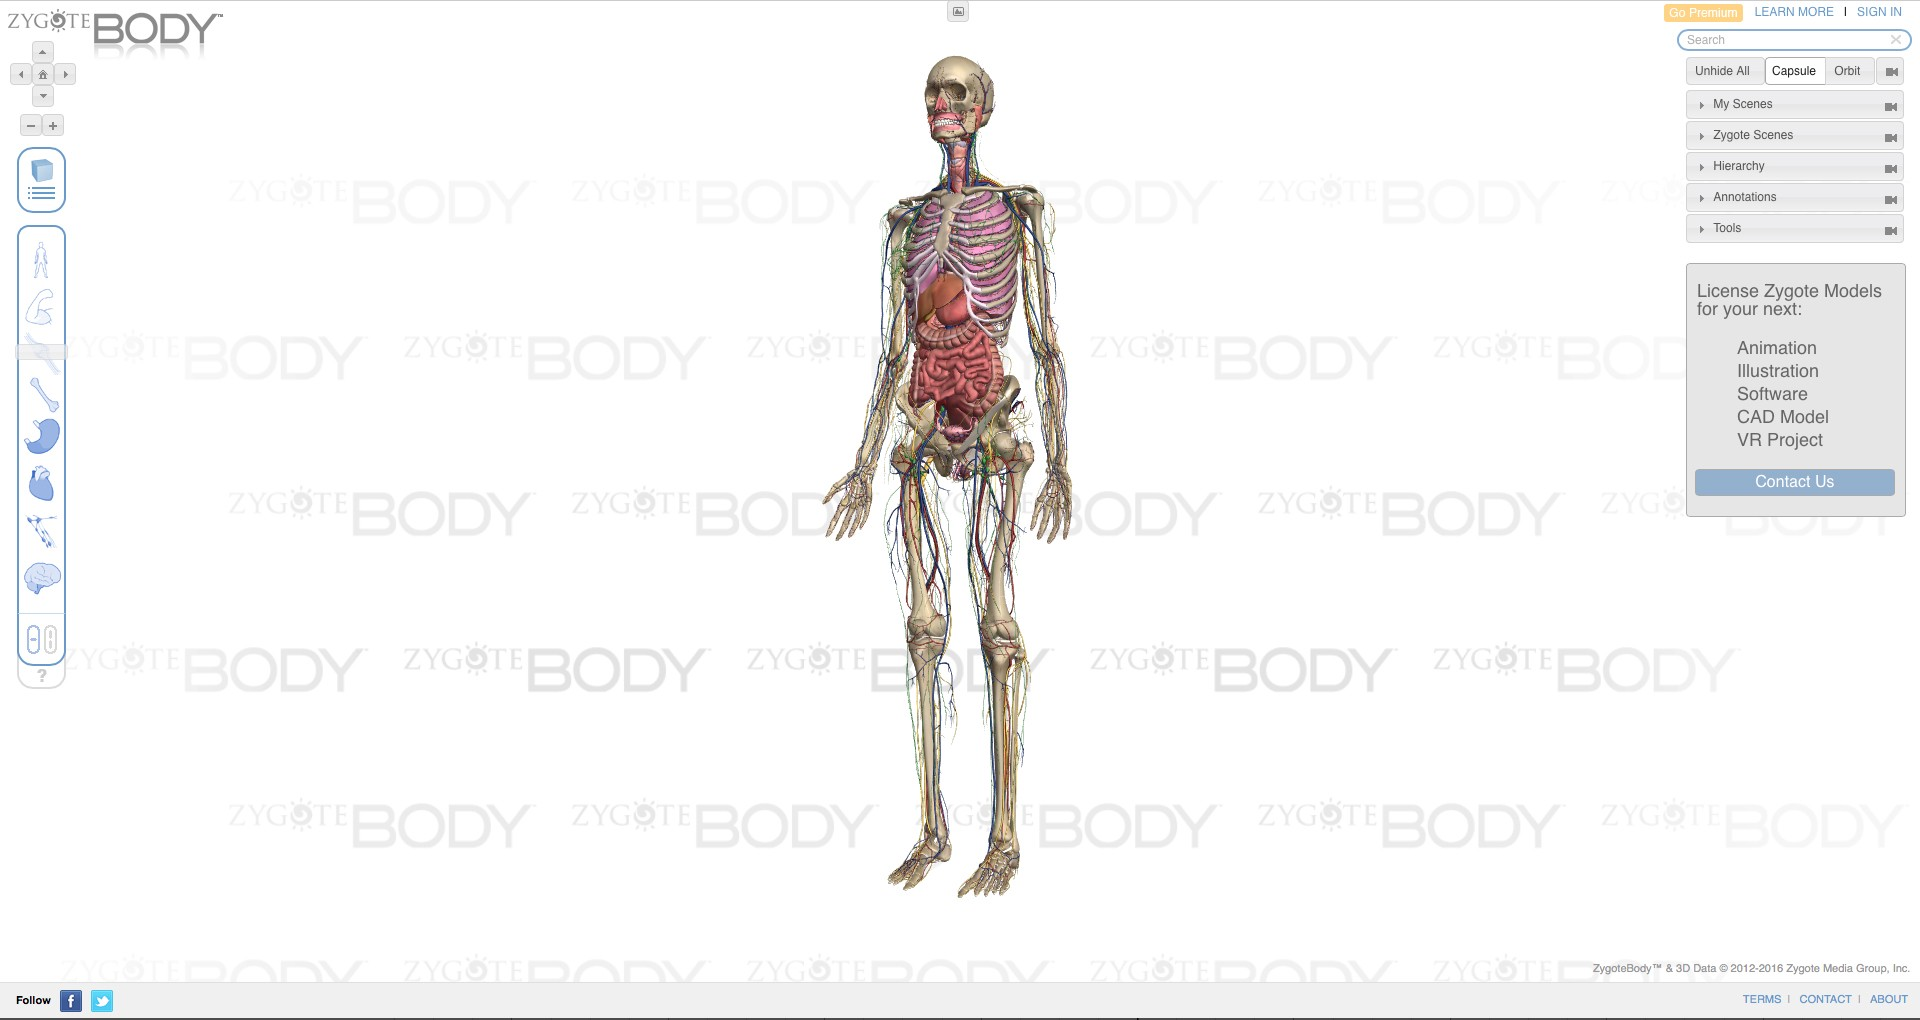 A 3D view of human body from https://zygotebody.com